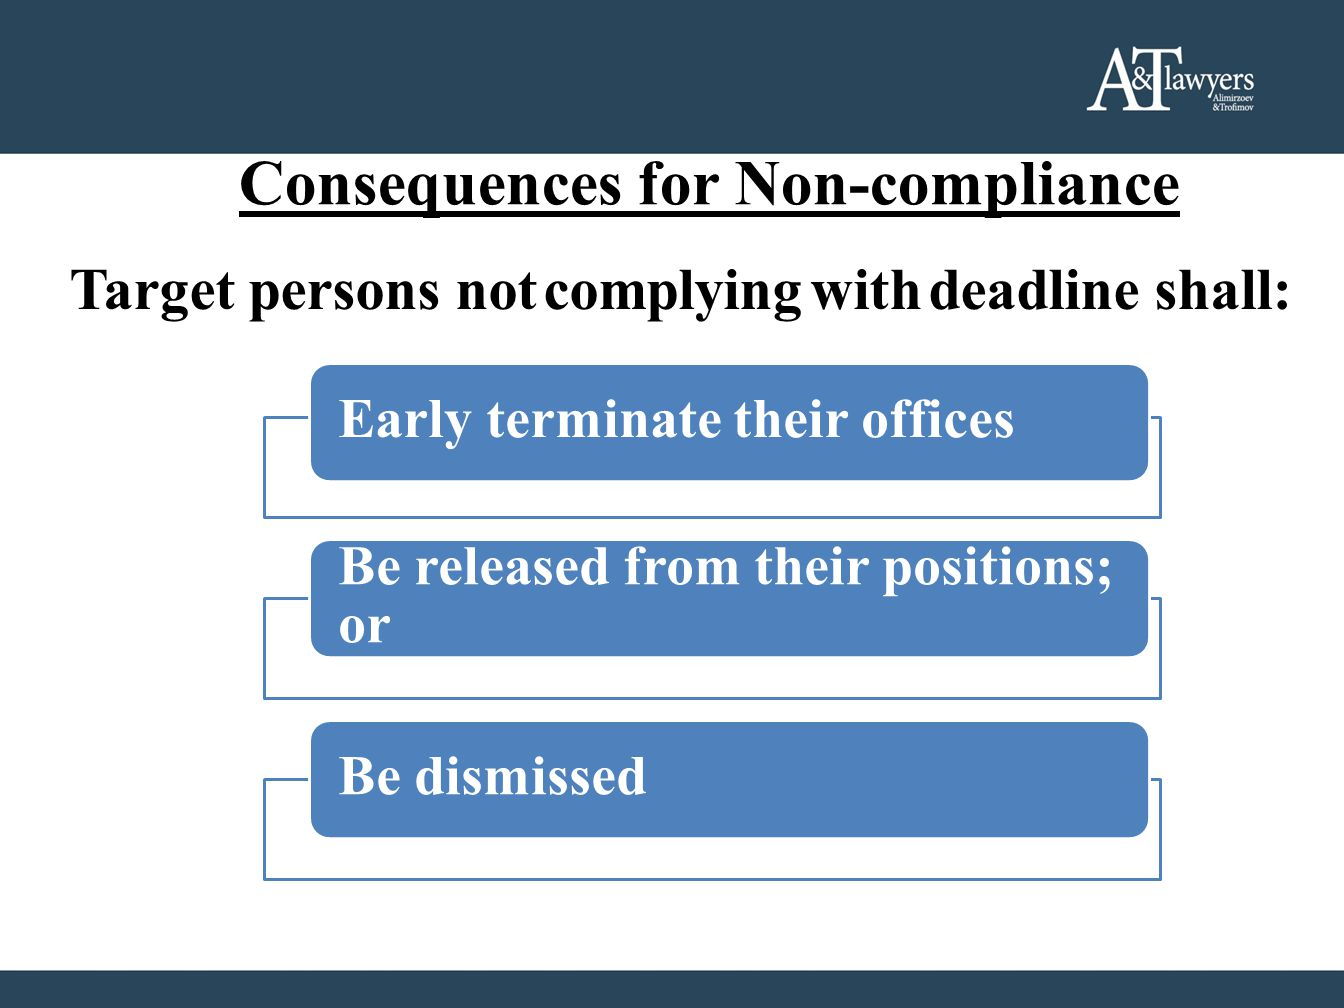 Consequences for Non-compliance Target persons not complying with deadline shall: Early terminate their offices Be released from their positions; or Be dismissed